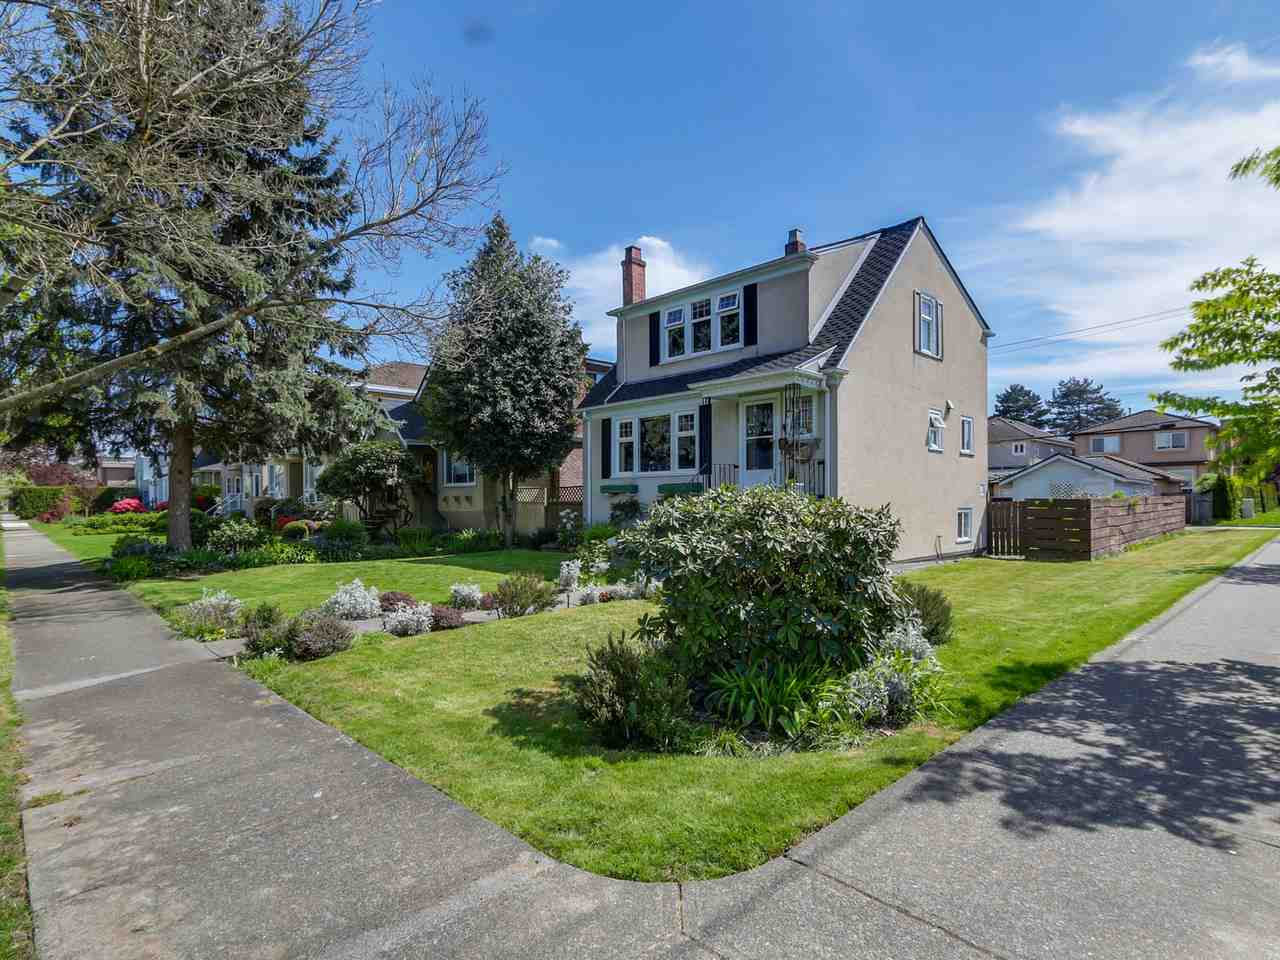 Photo 4: 2796 W 21ST Avenue in Vancouver: Arbutus House for sale (Vancouver West)  : MLS(r) # R2078868